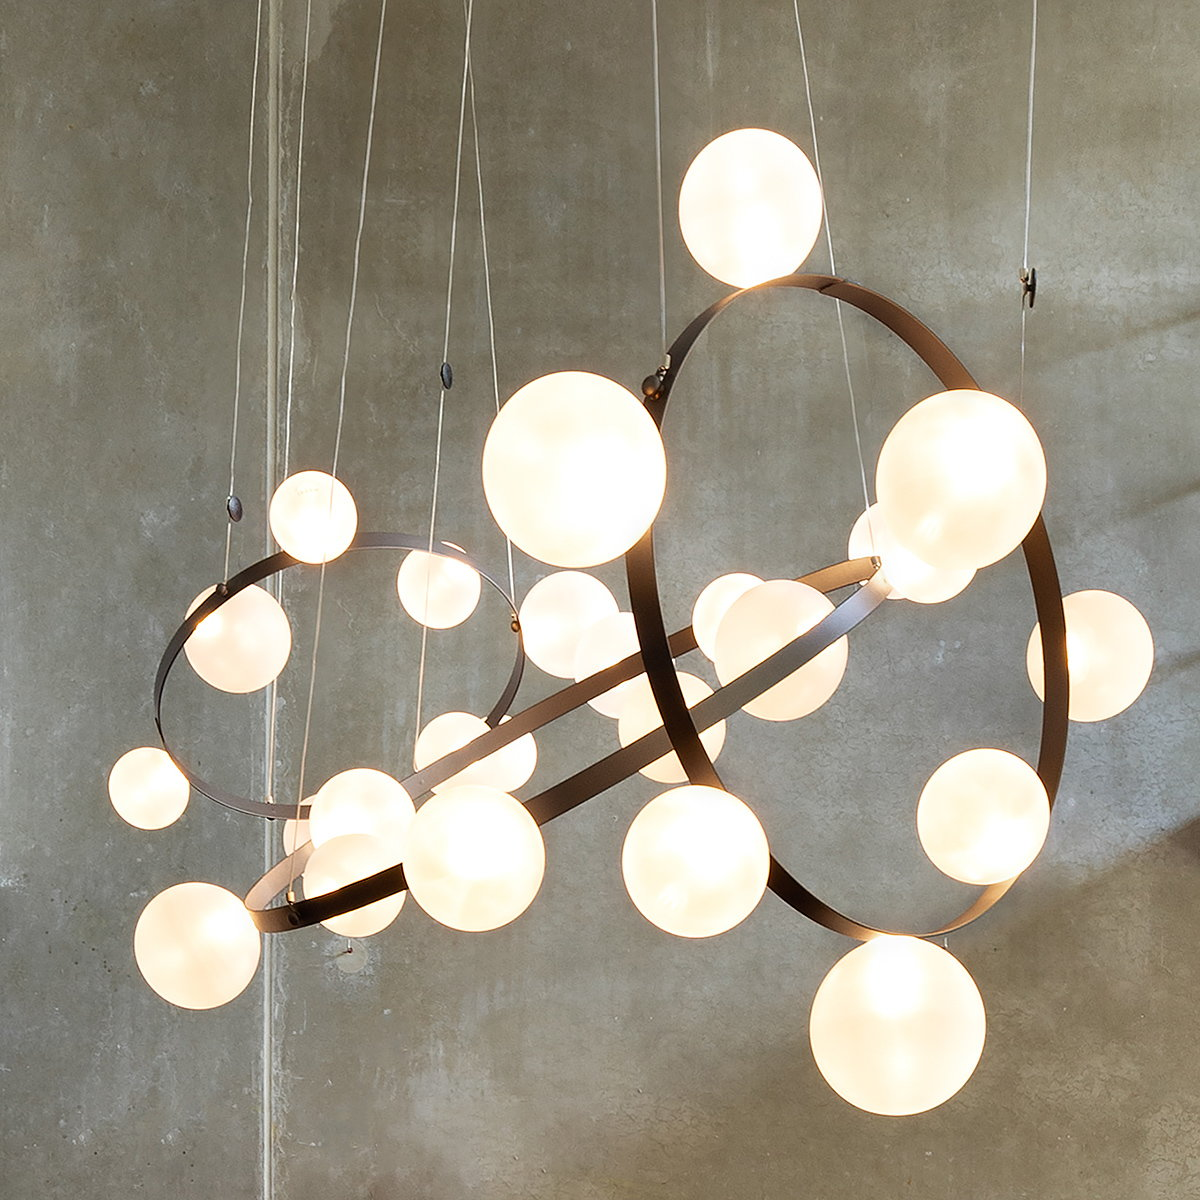 Moooi Hubble Bubble by Marcel Wanders Studio